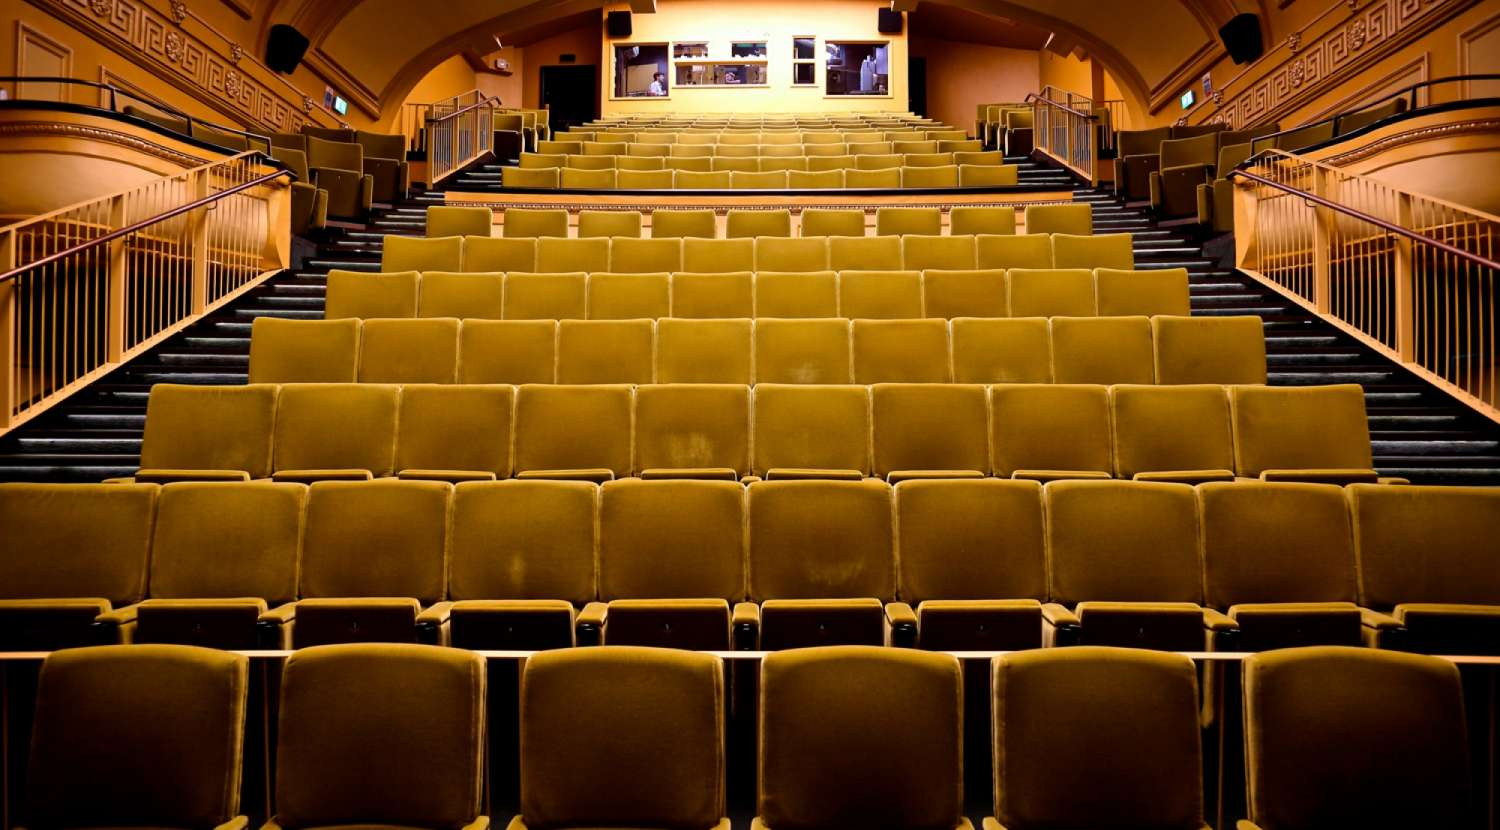 Front view of cinema seating